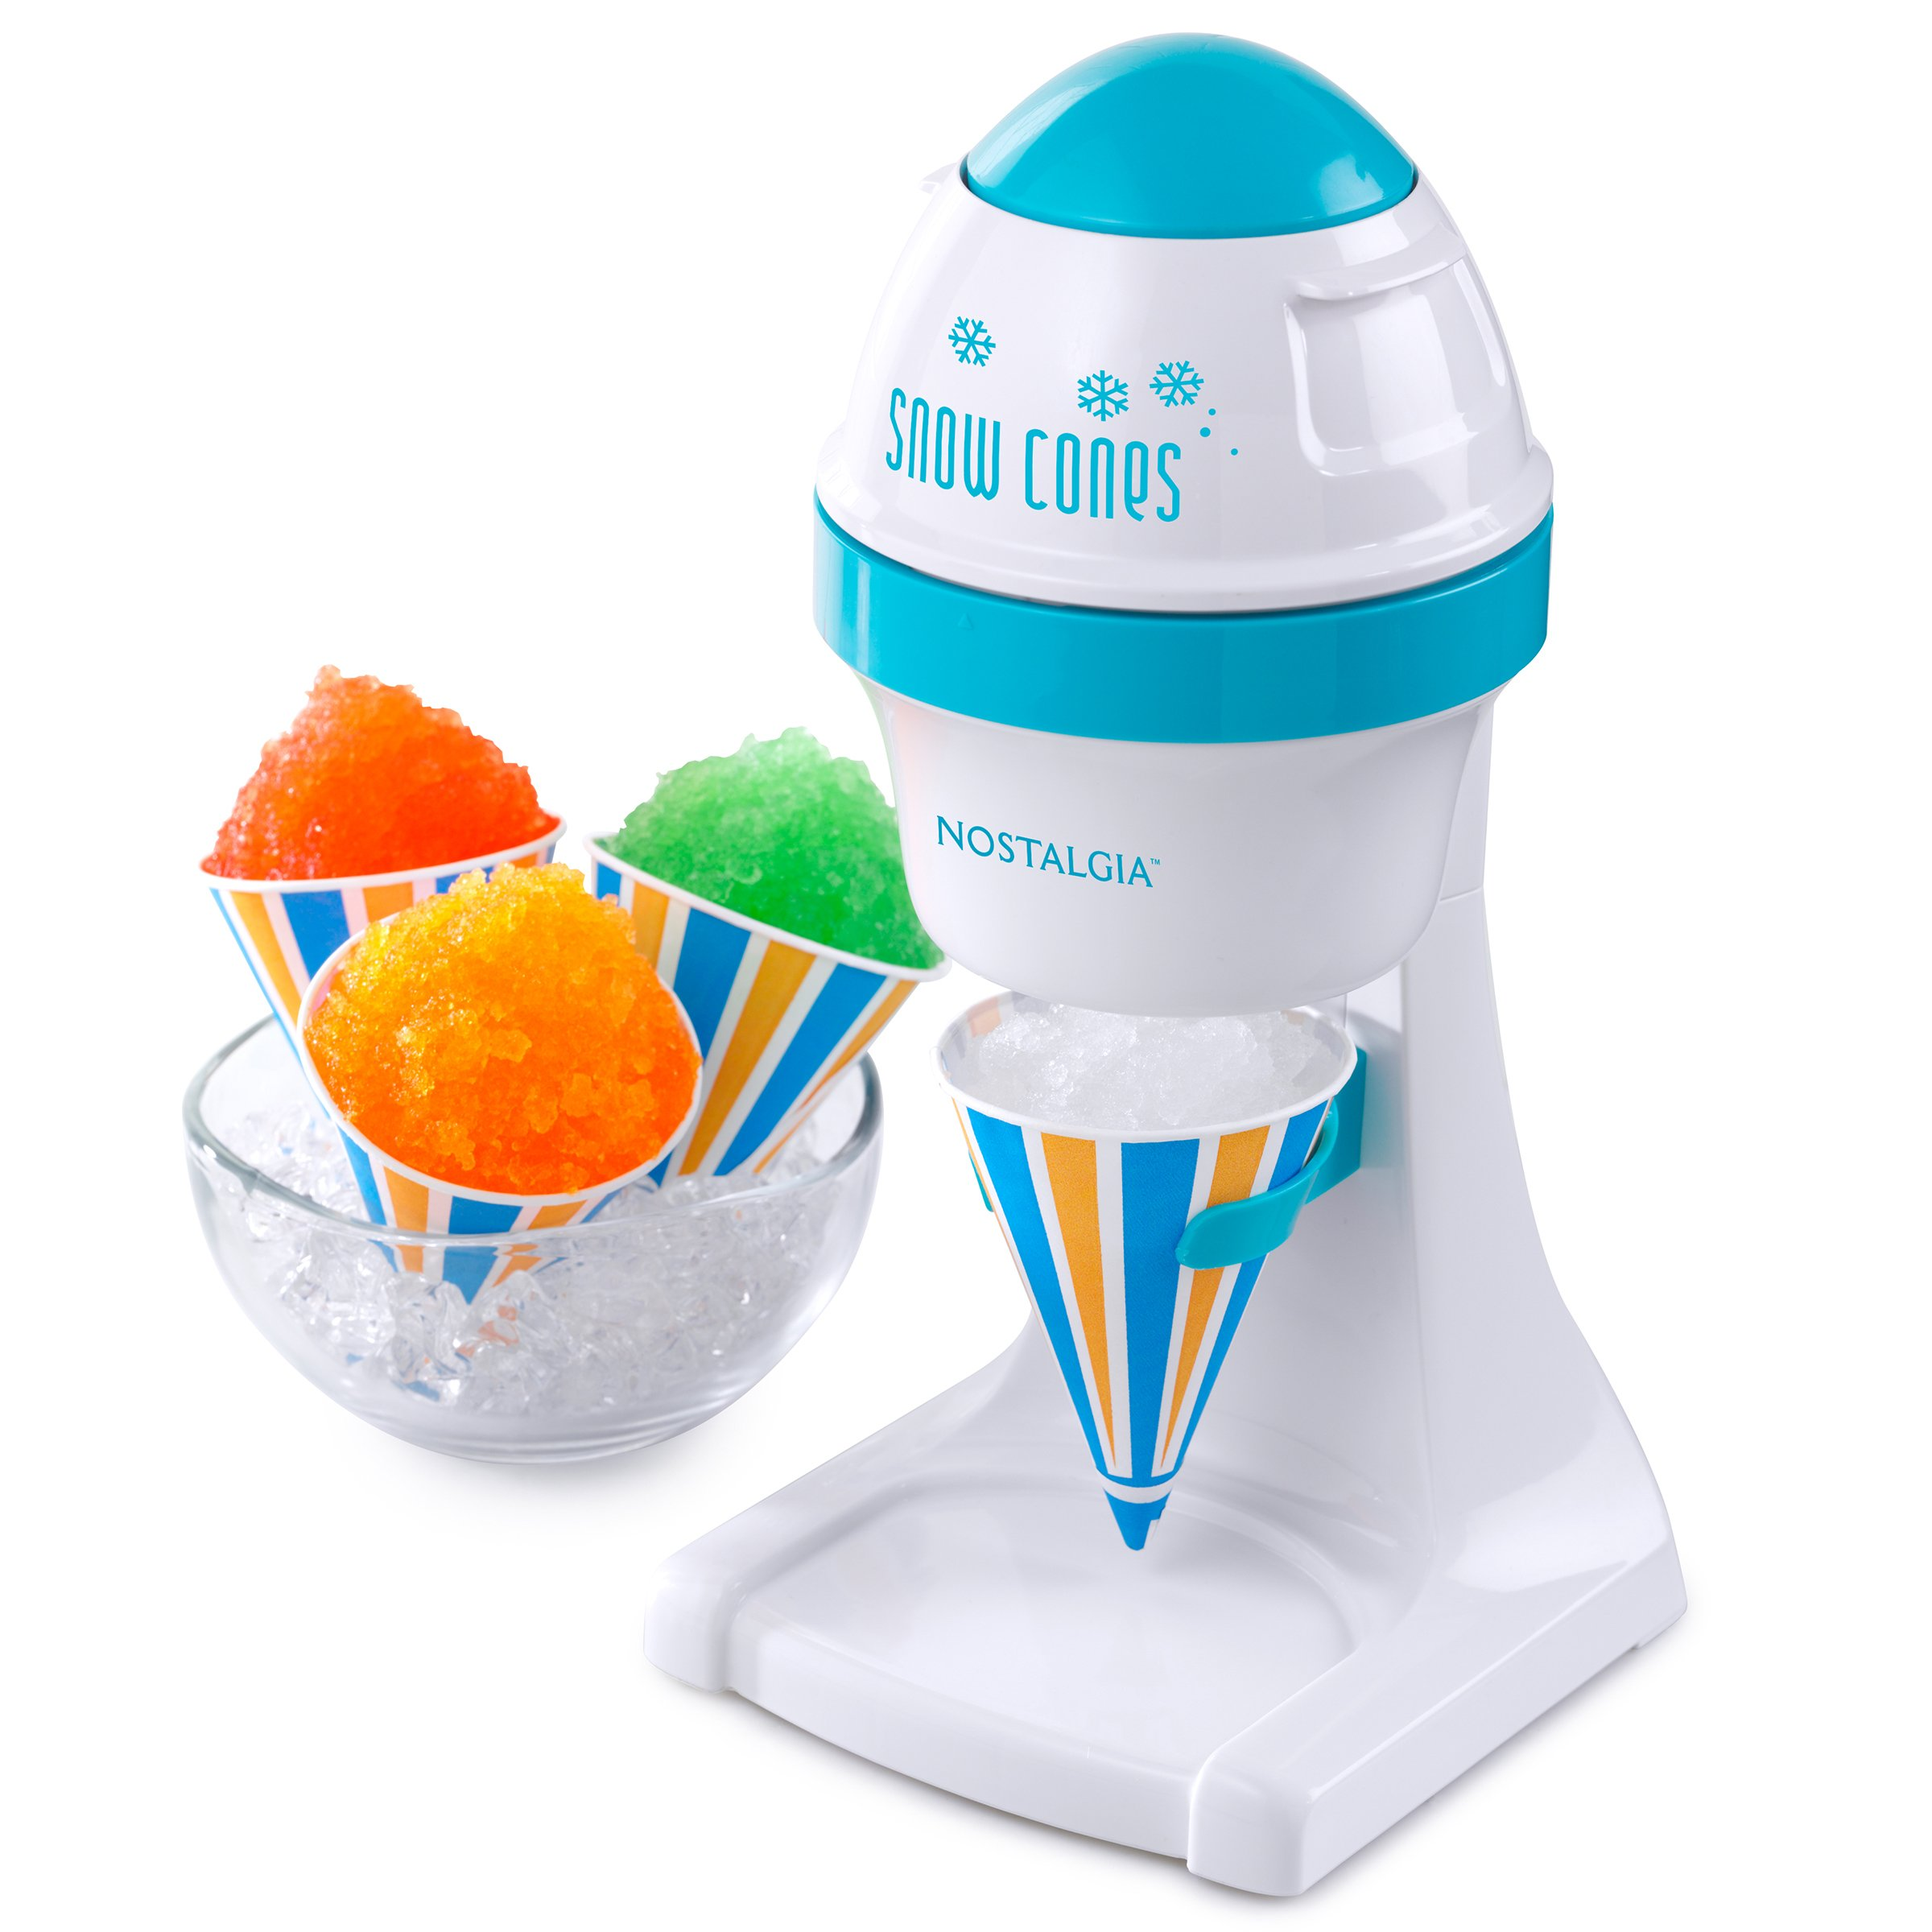 Nostalgia ISM1000 Electric Shaved Ice & Snow Cone Maker by NOSTALGIA